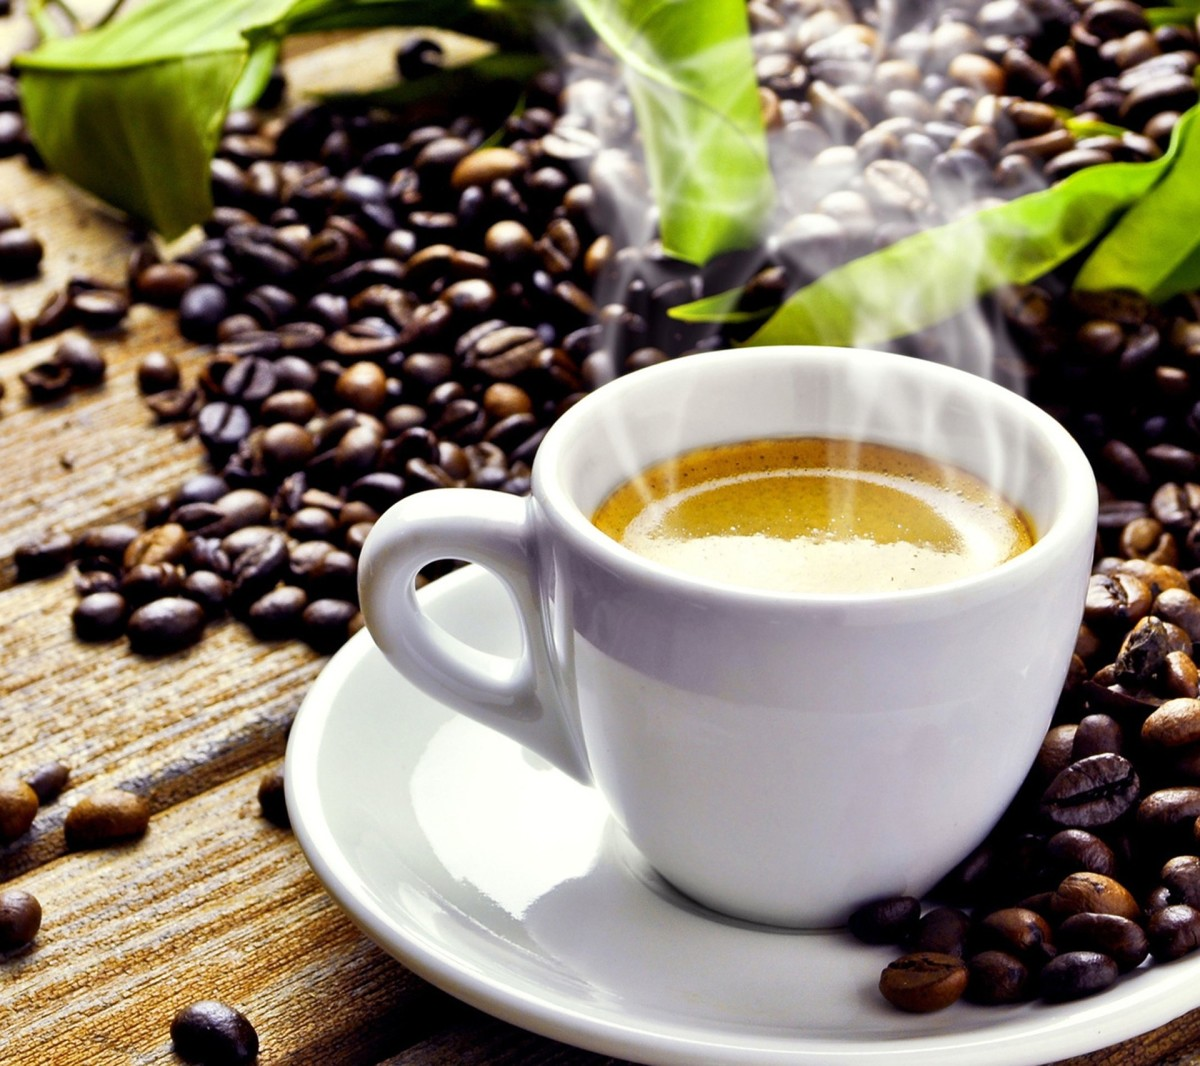 A Reason to Love Your Cup of Coffee